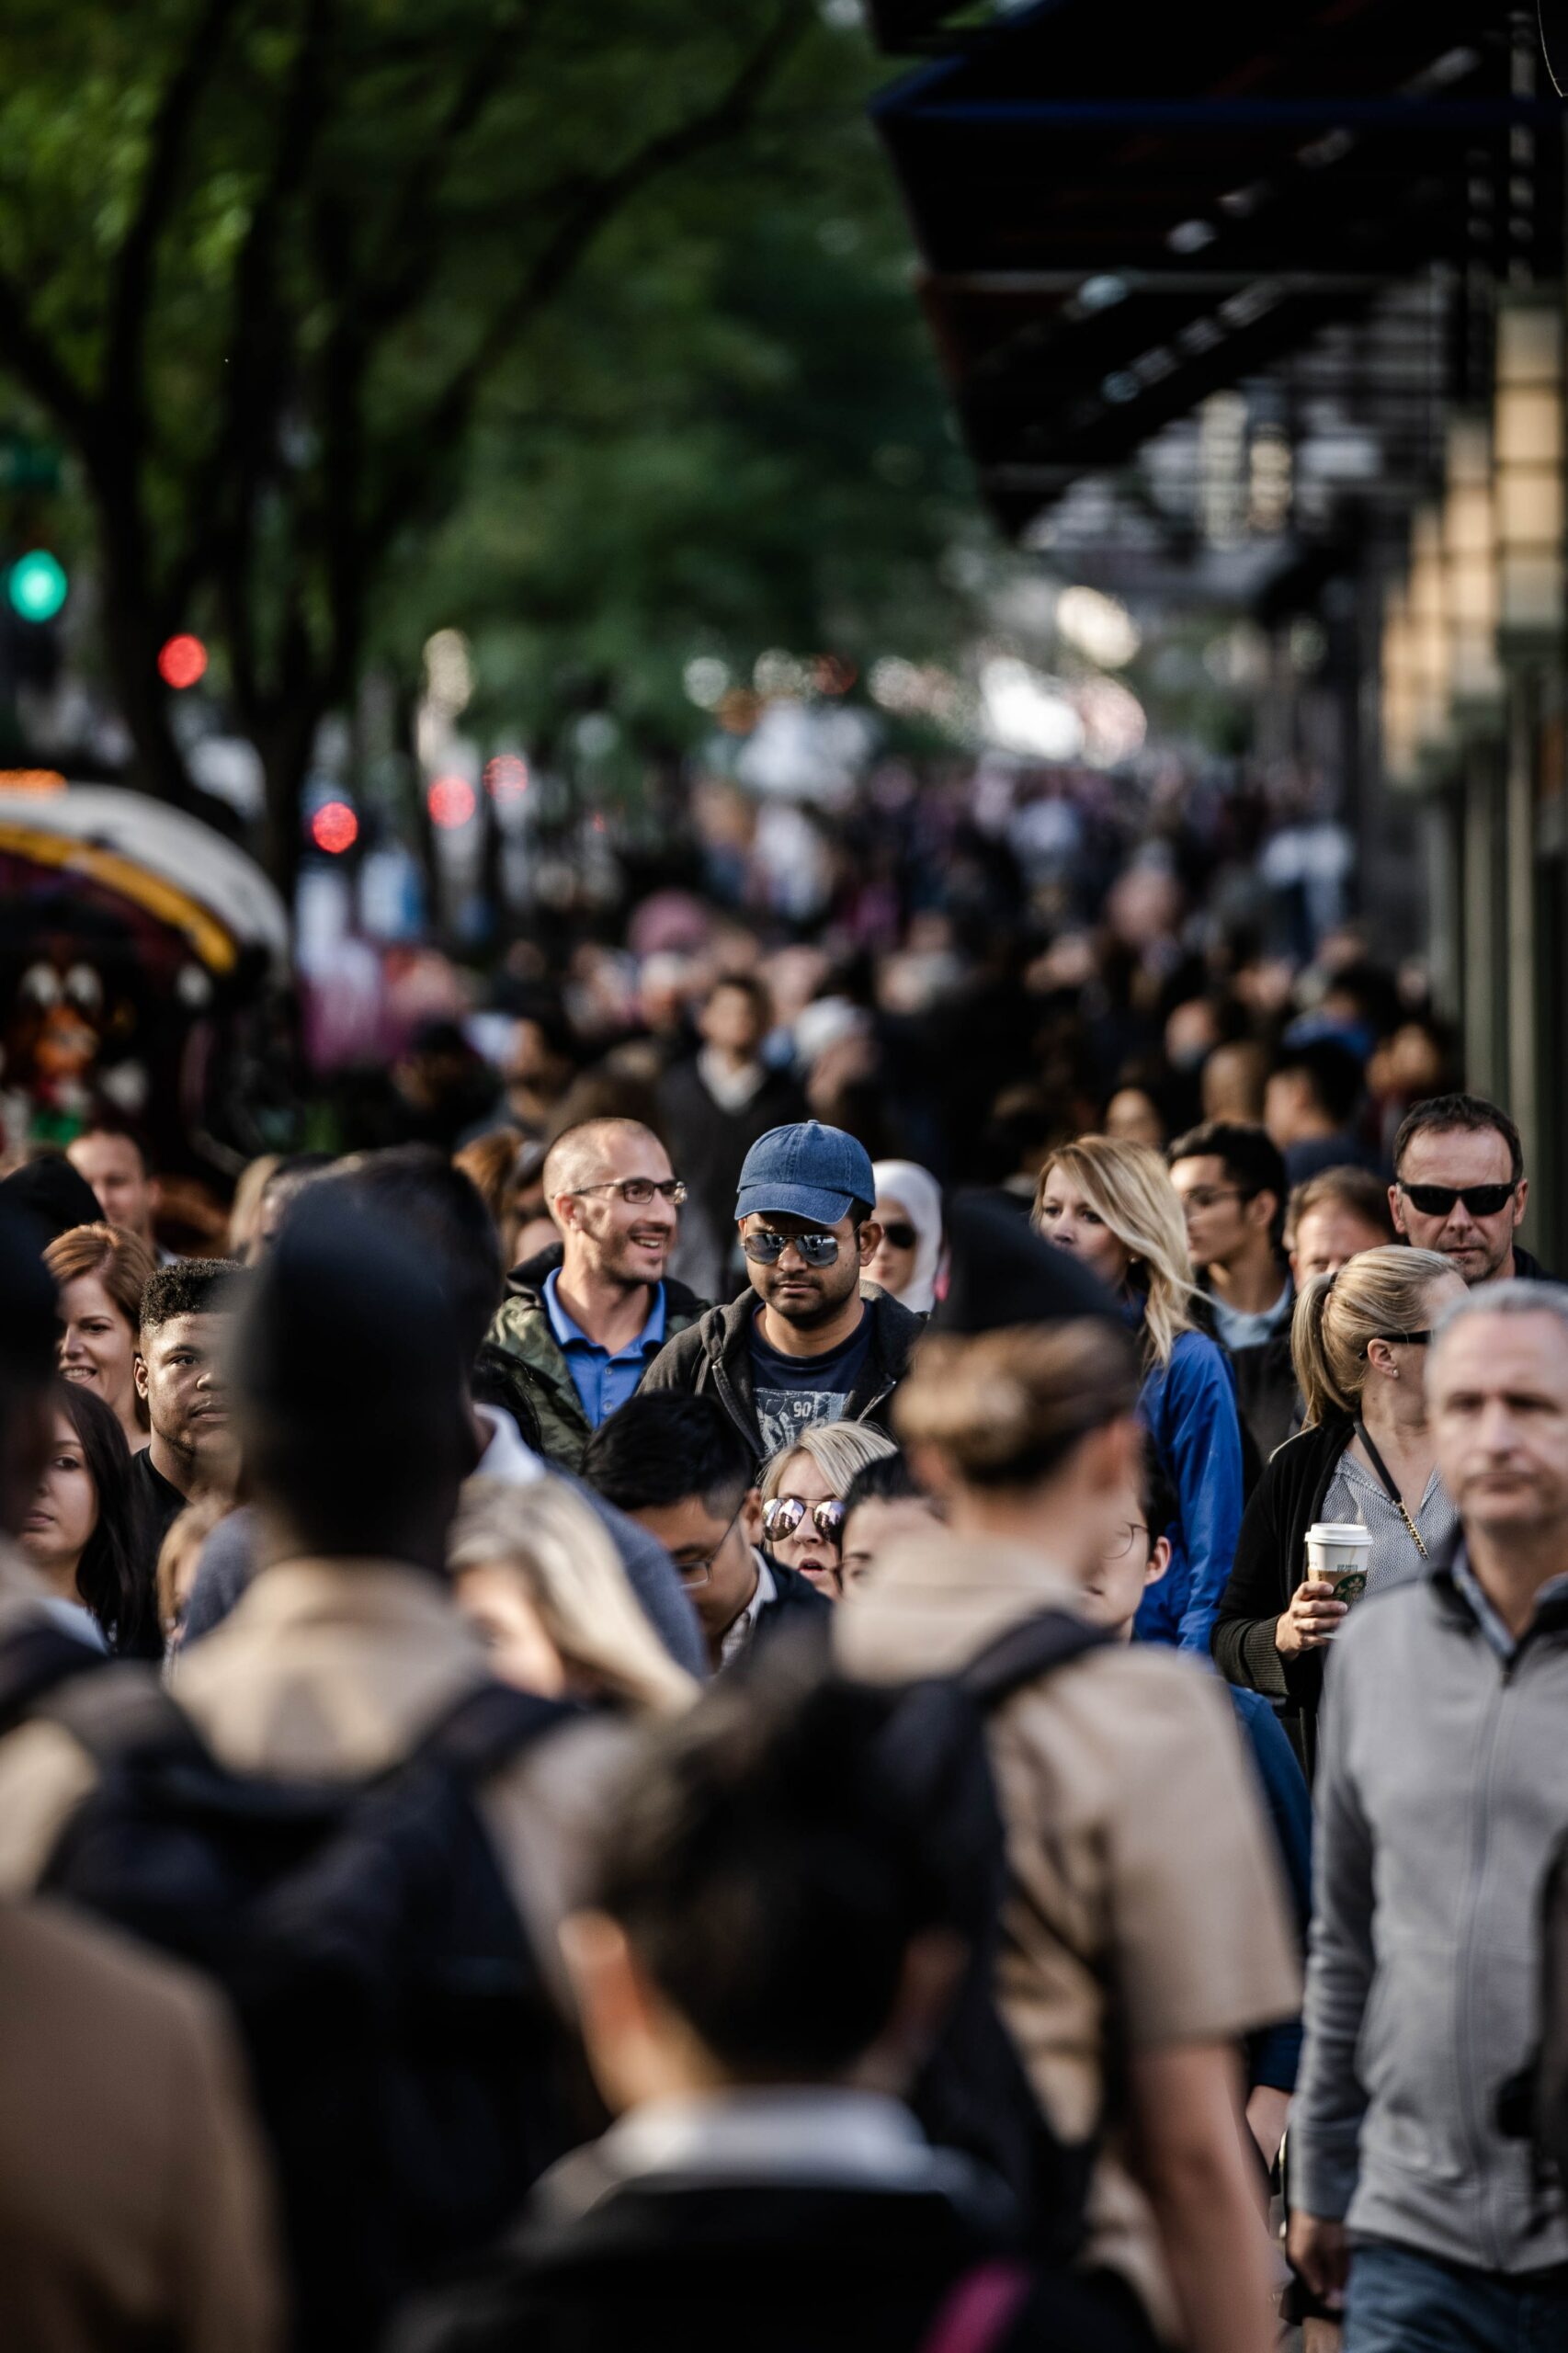 Man in large crowd of people outside